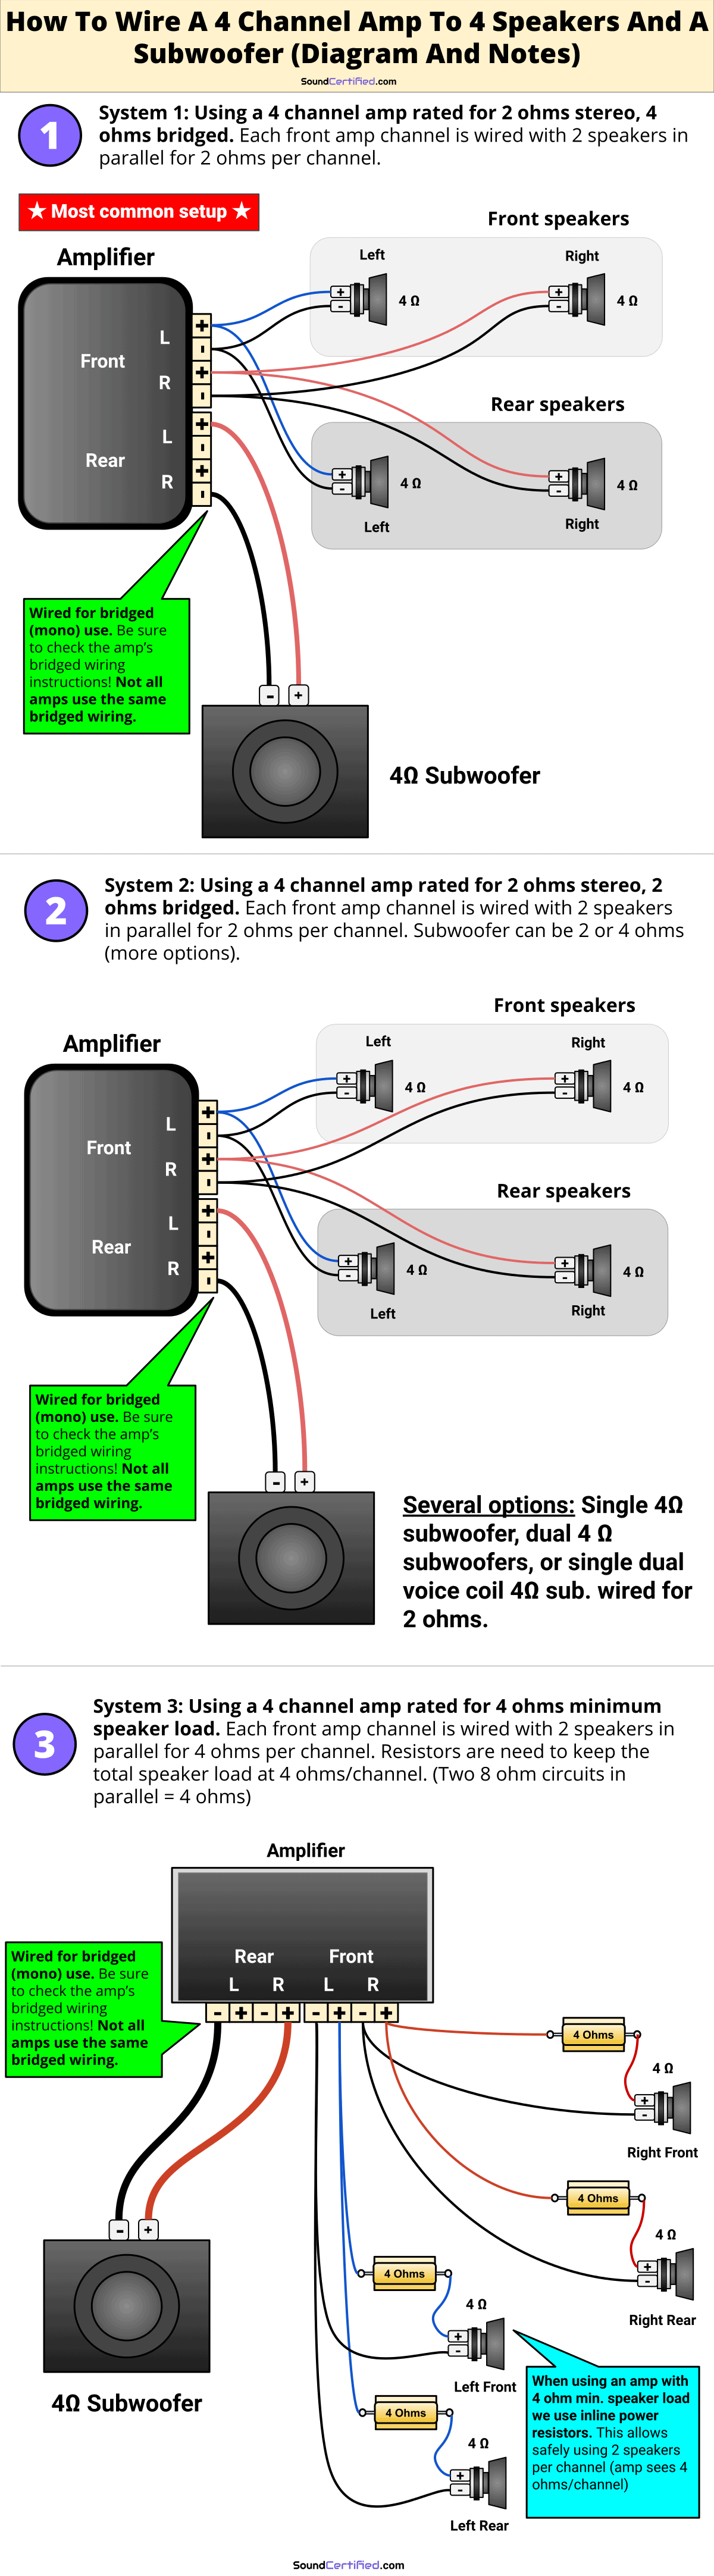 How To Wire A 4 Channel Amp To 4 Speakers And A Sub: A ...  Channel Amp Speaker Wiring Diagram on